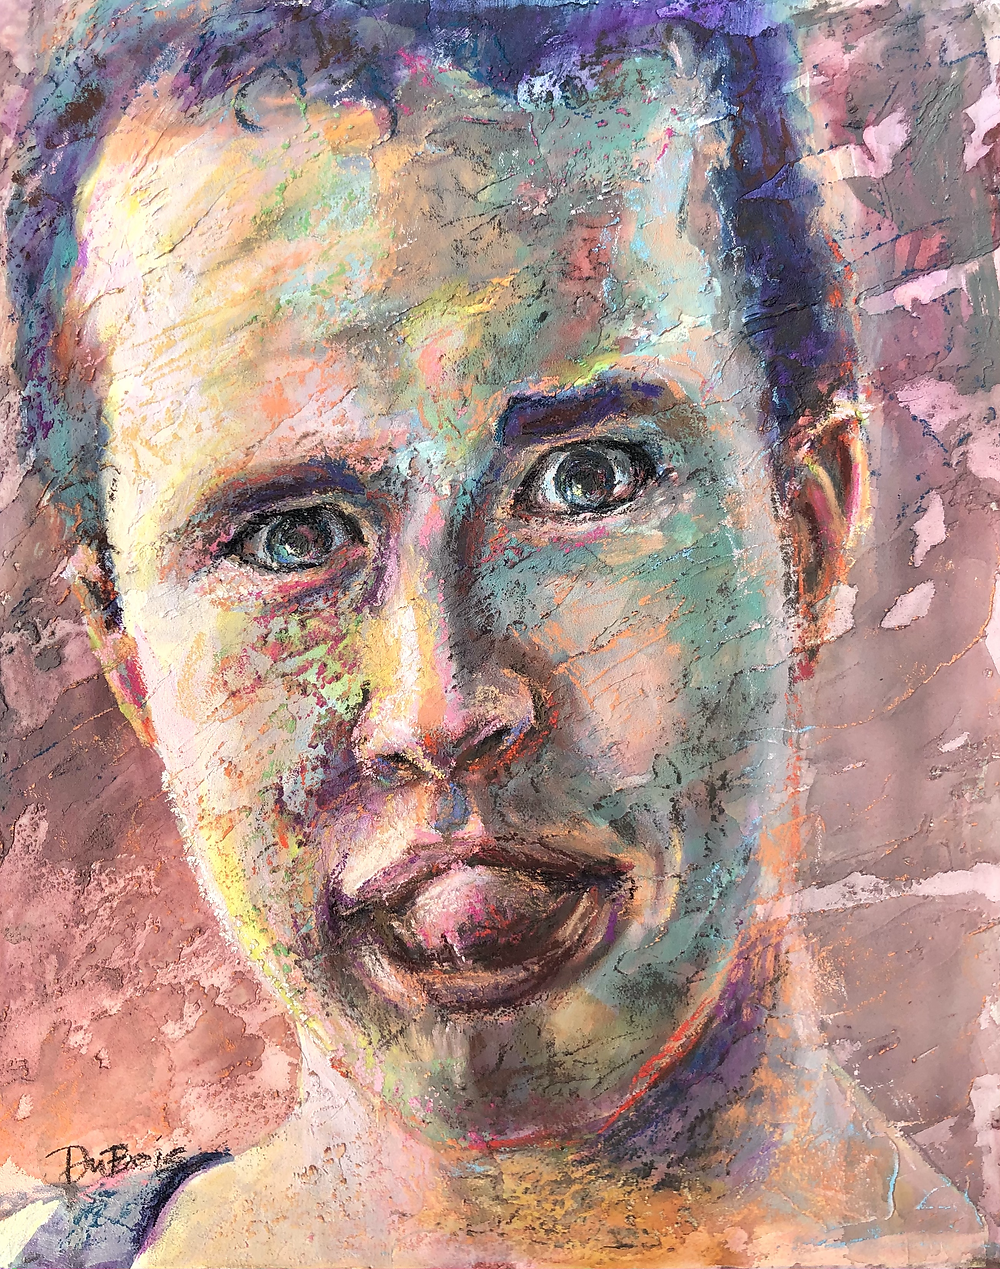 Mixed media portrait of a young man sticking out his tongue